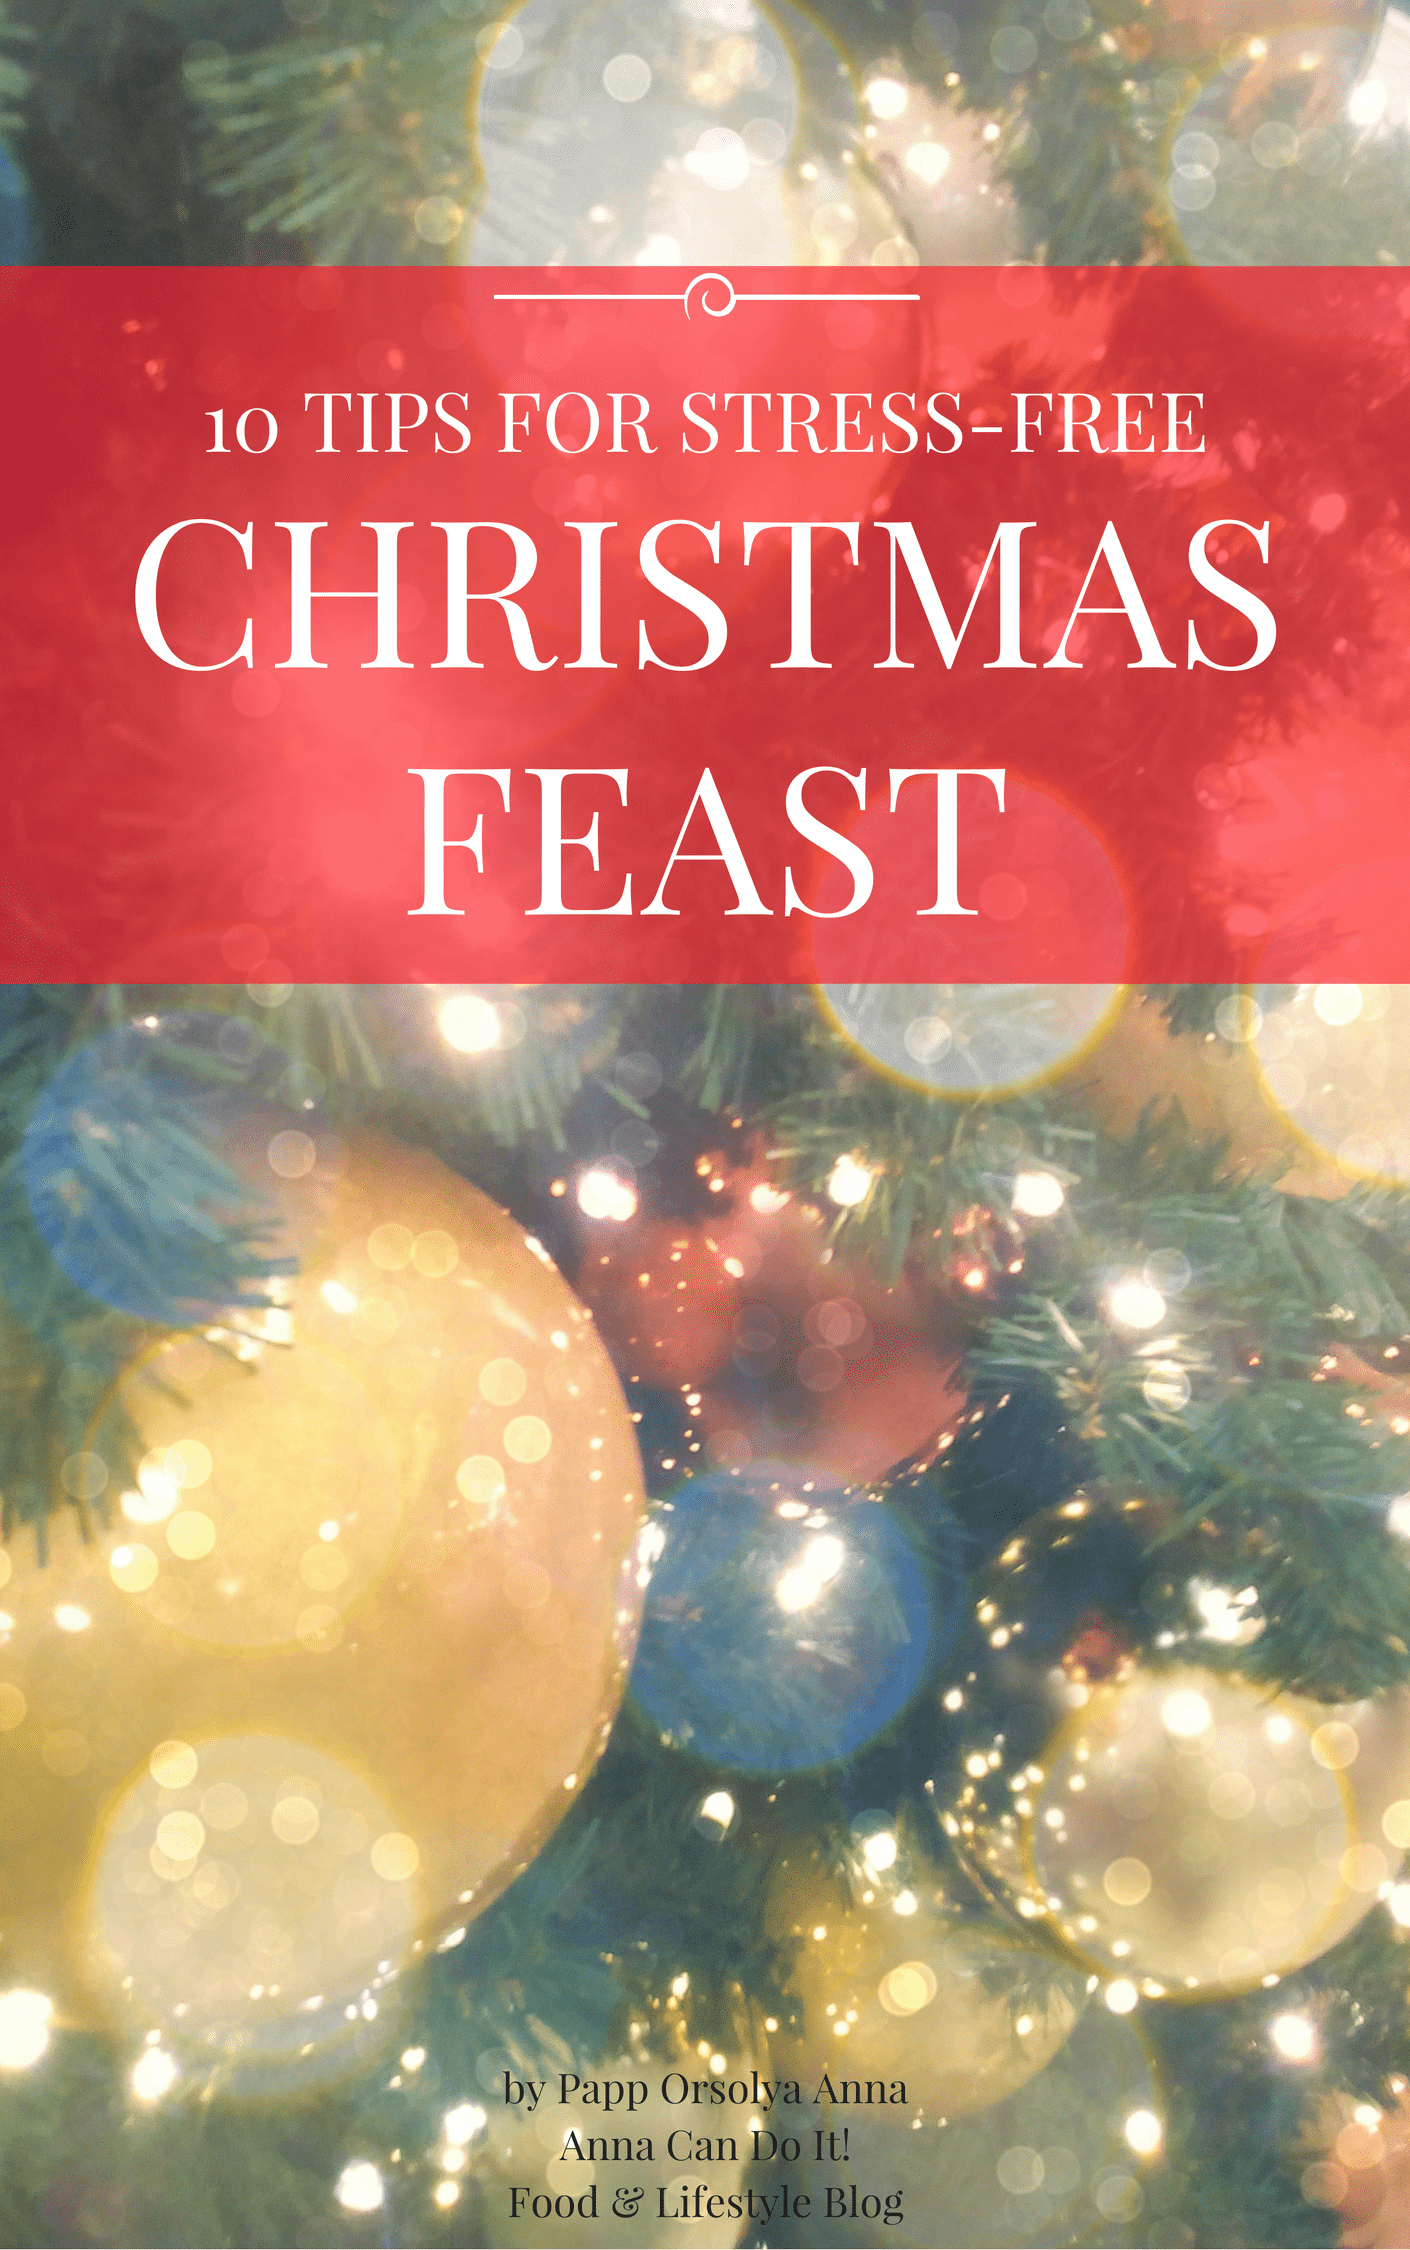 10 Tips for Stress-Free Christmas Feast - Anna Can Do It!